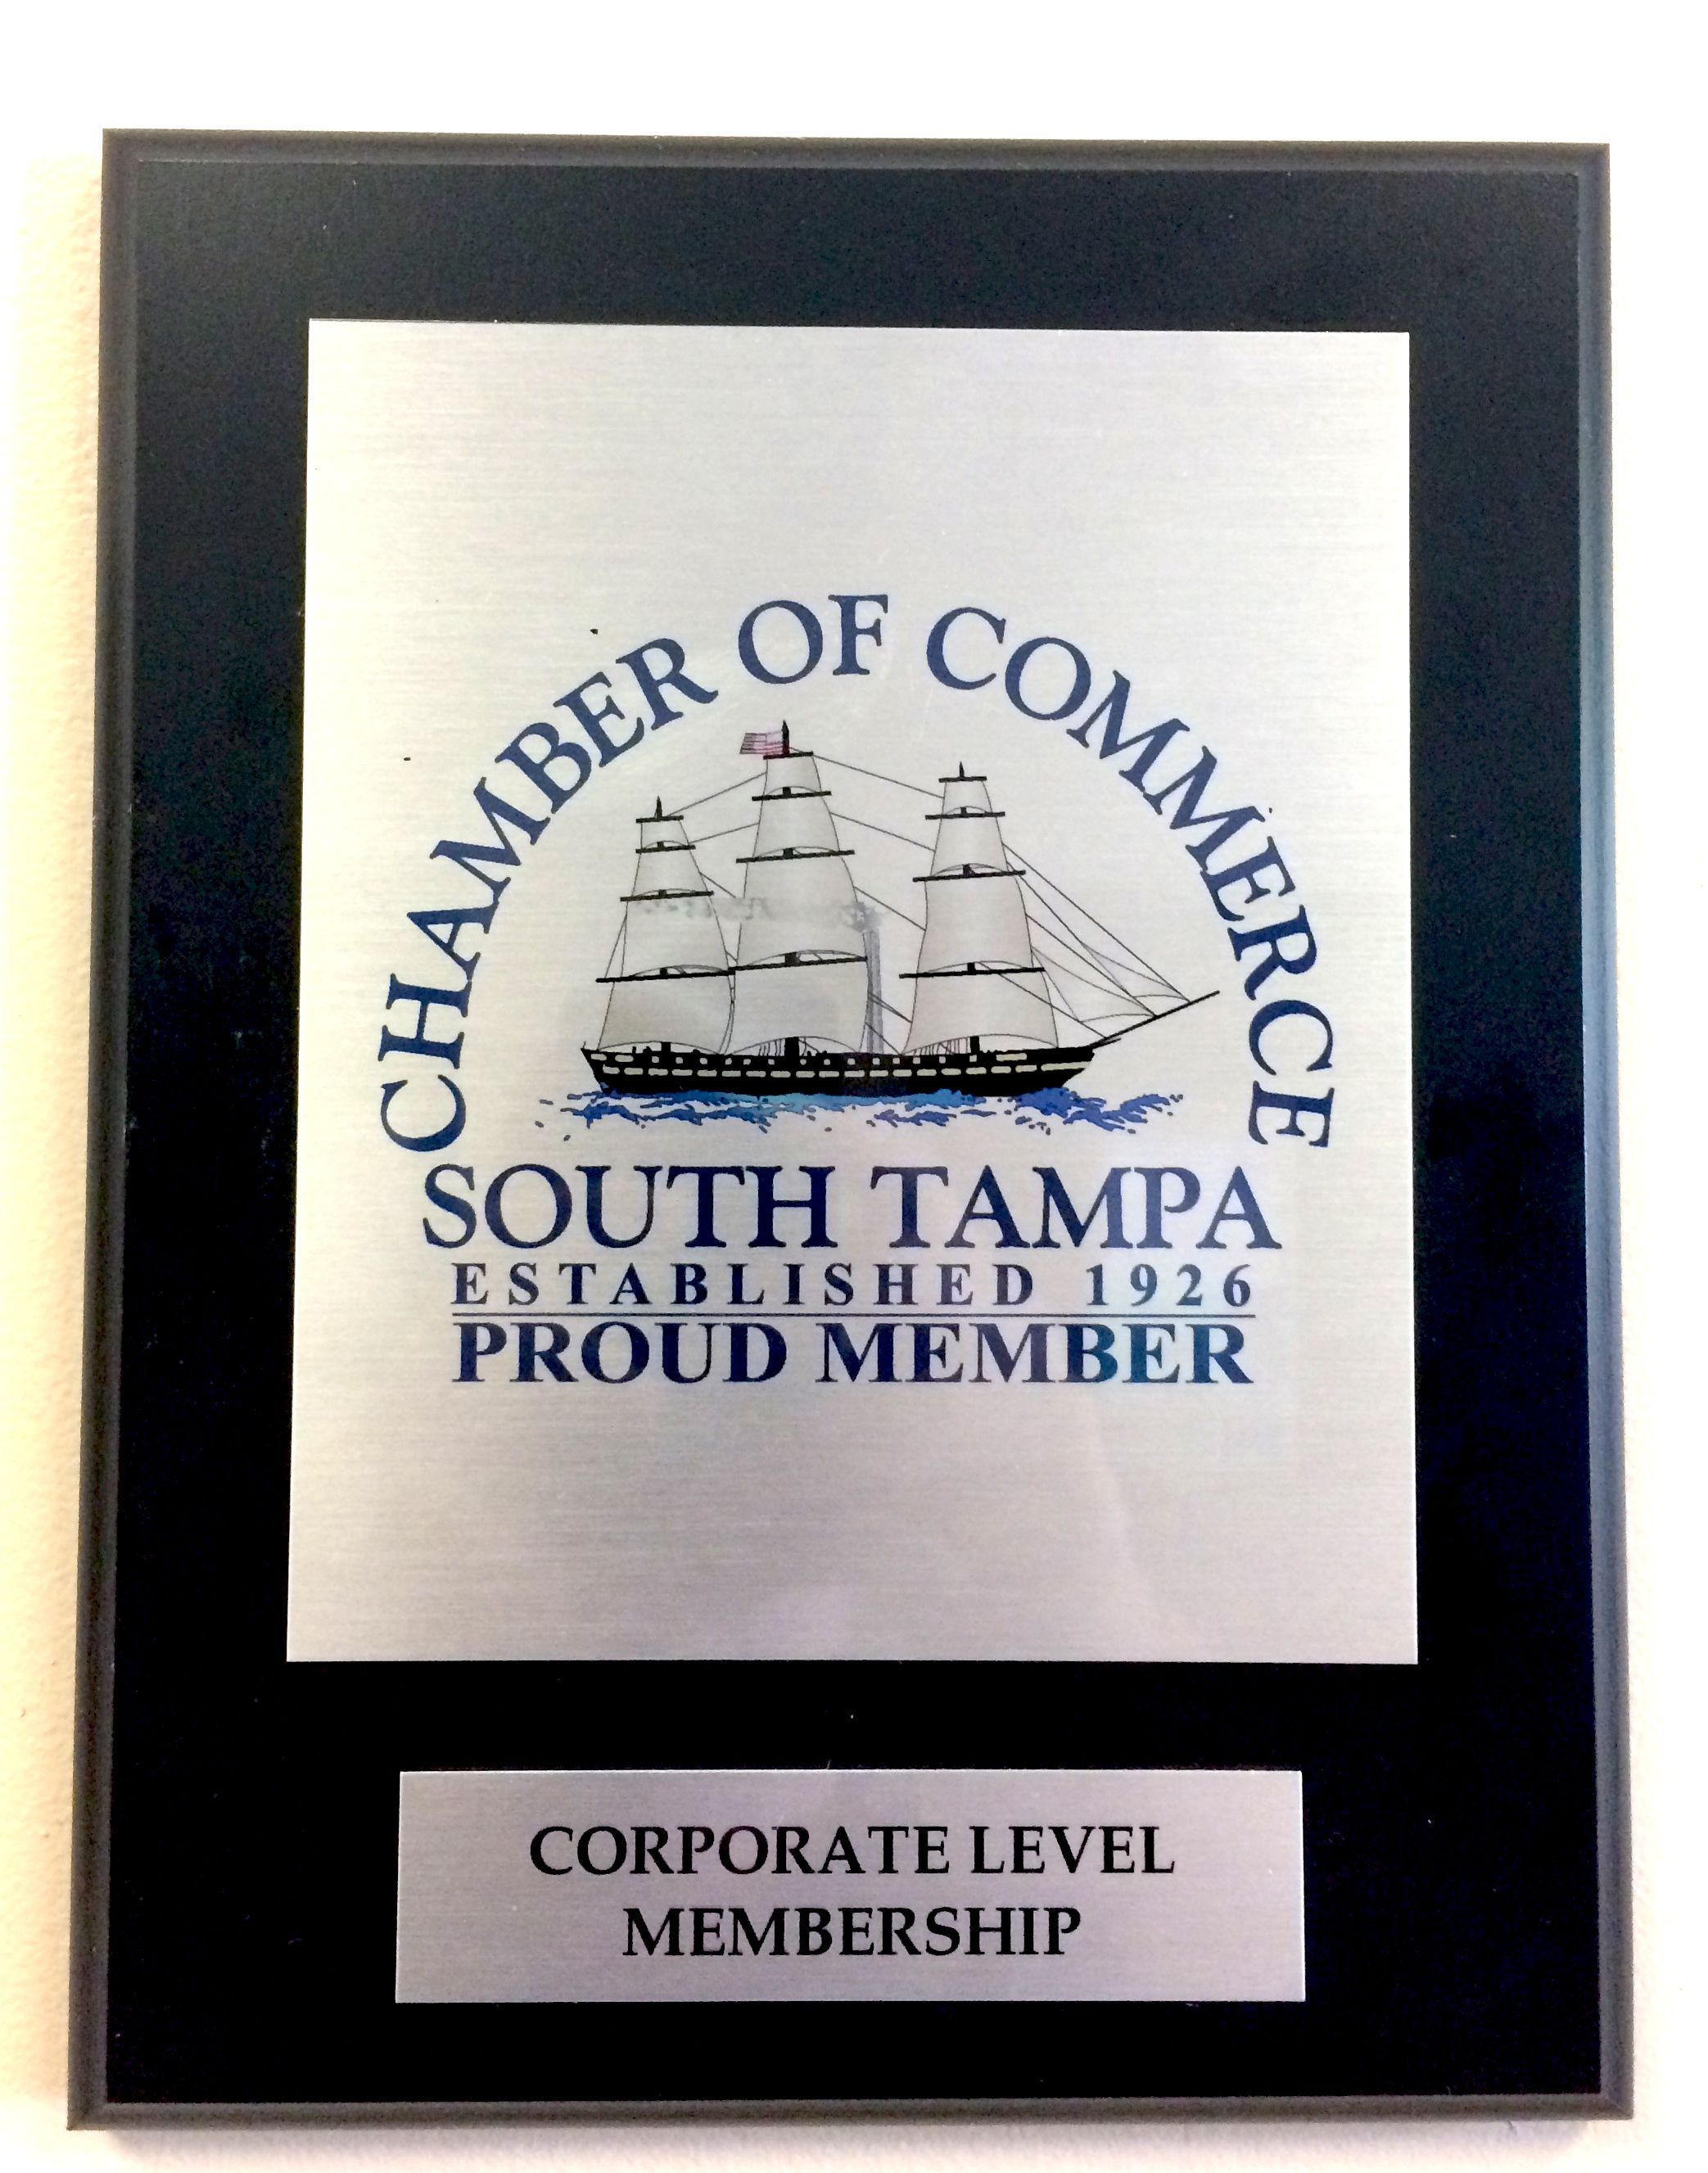 Proud new members of the South Tampa Chamber of Commerce